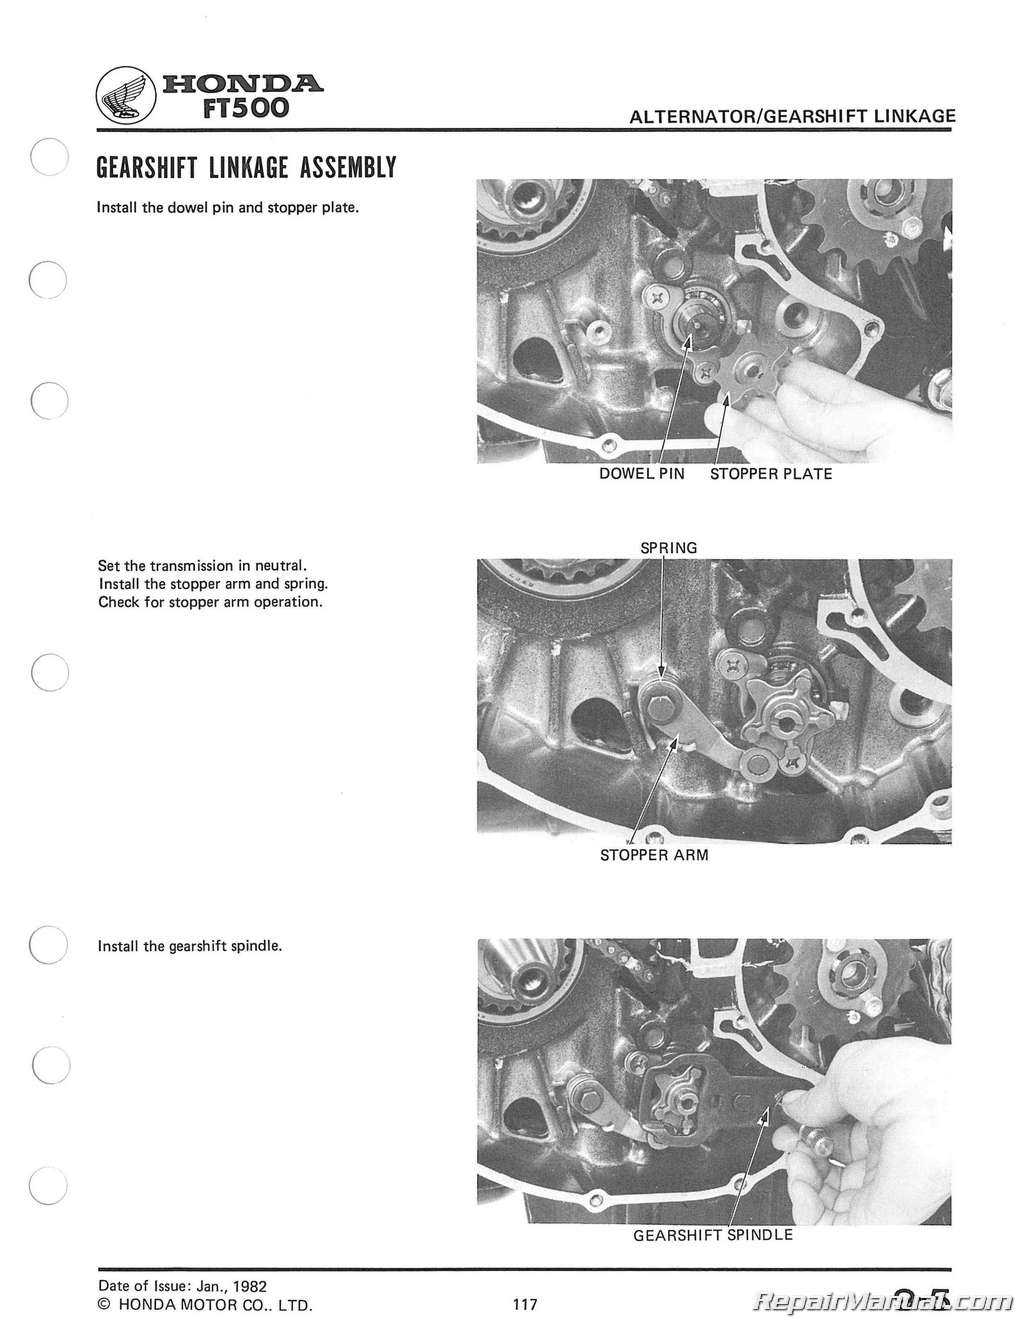 Diagram Of Honda Motorcycle Parts 1984 Gl1200 A Alternator Shaft